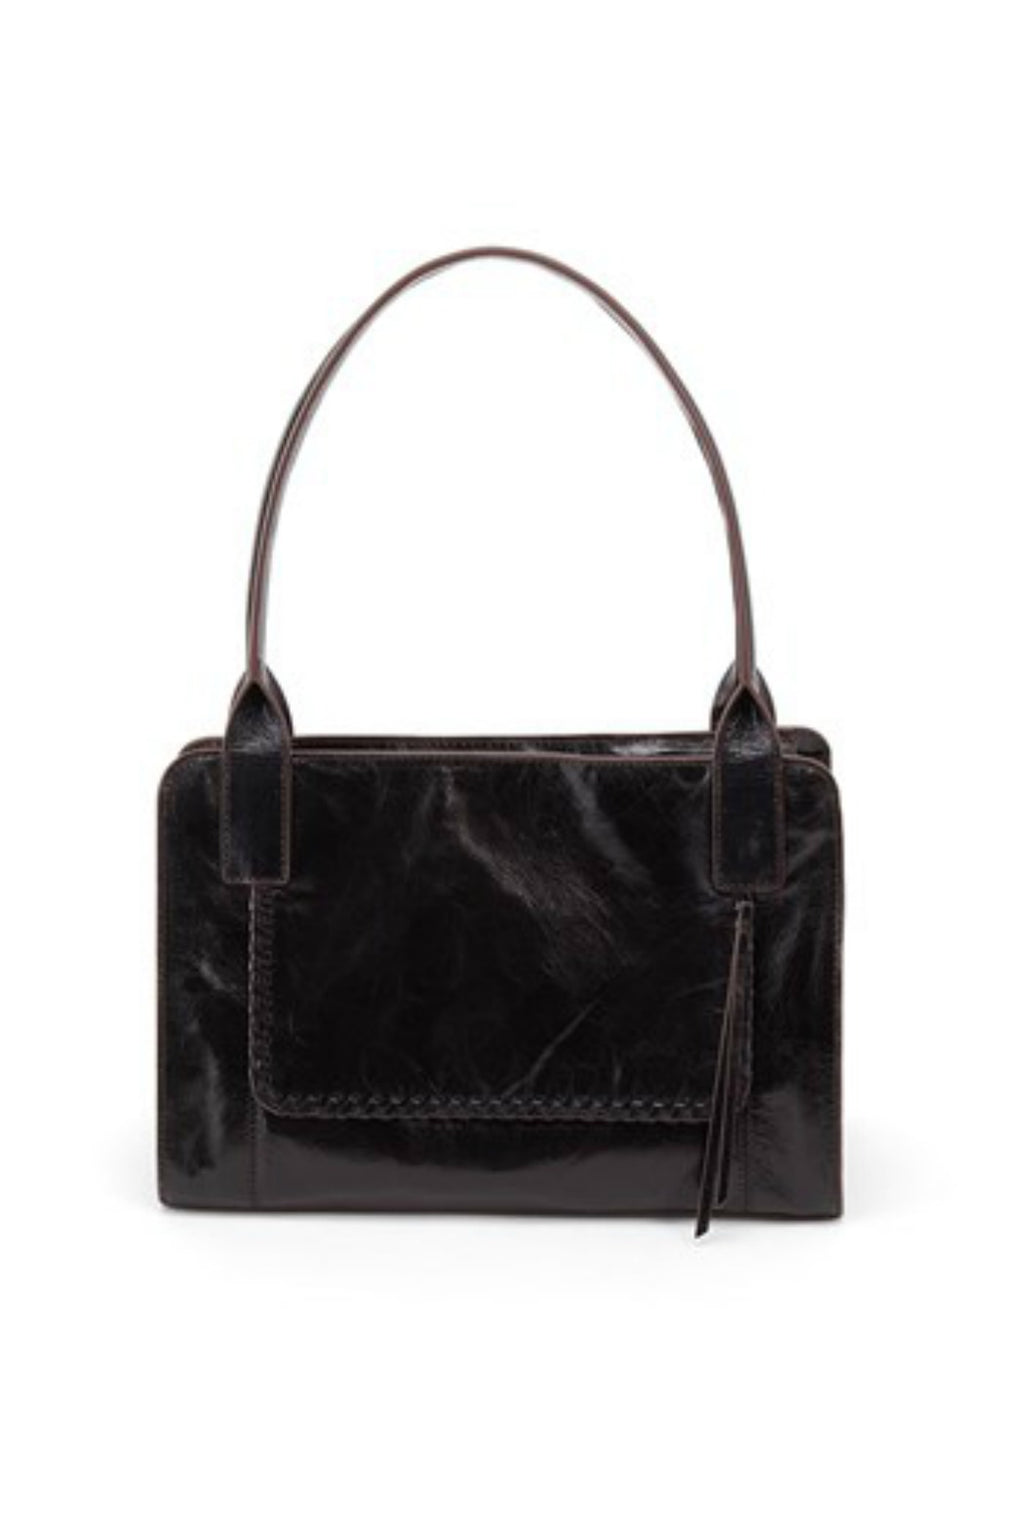 Hobo Splendor Shoulder bag in Black